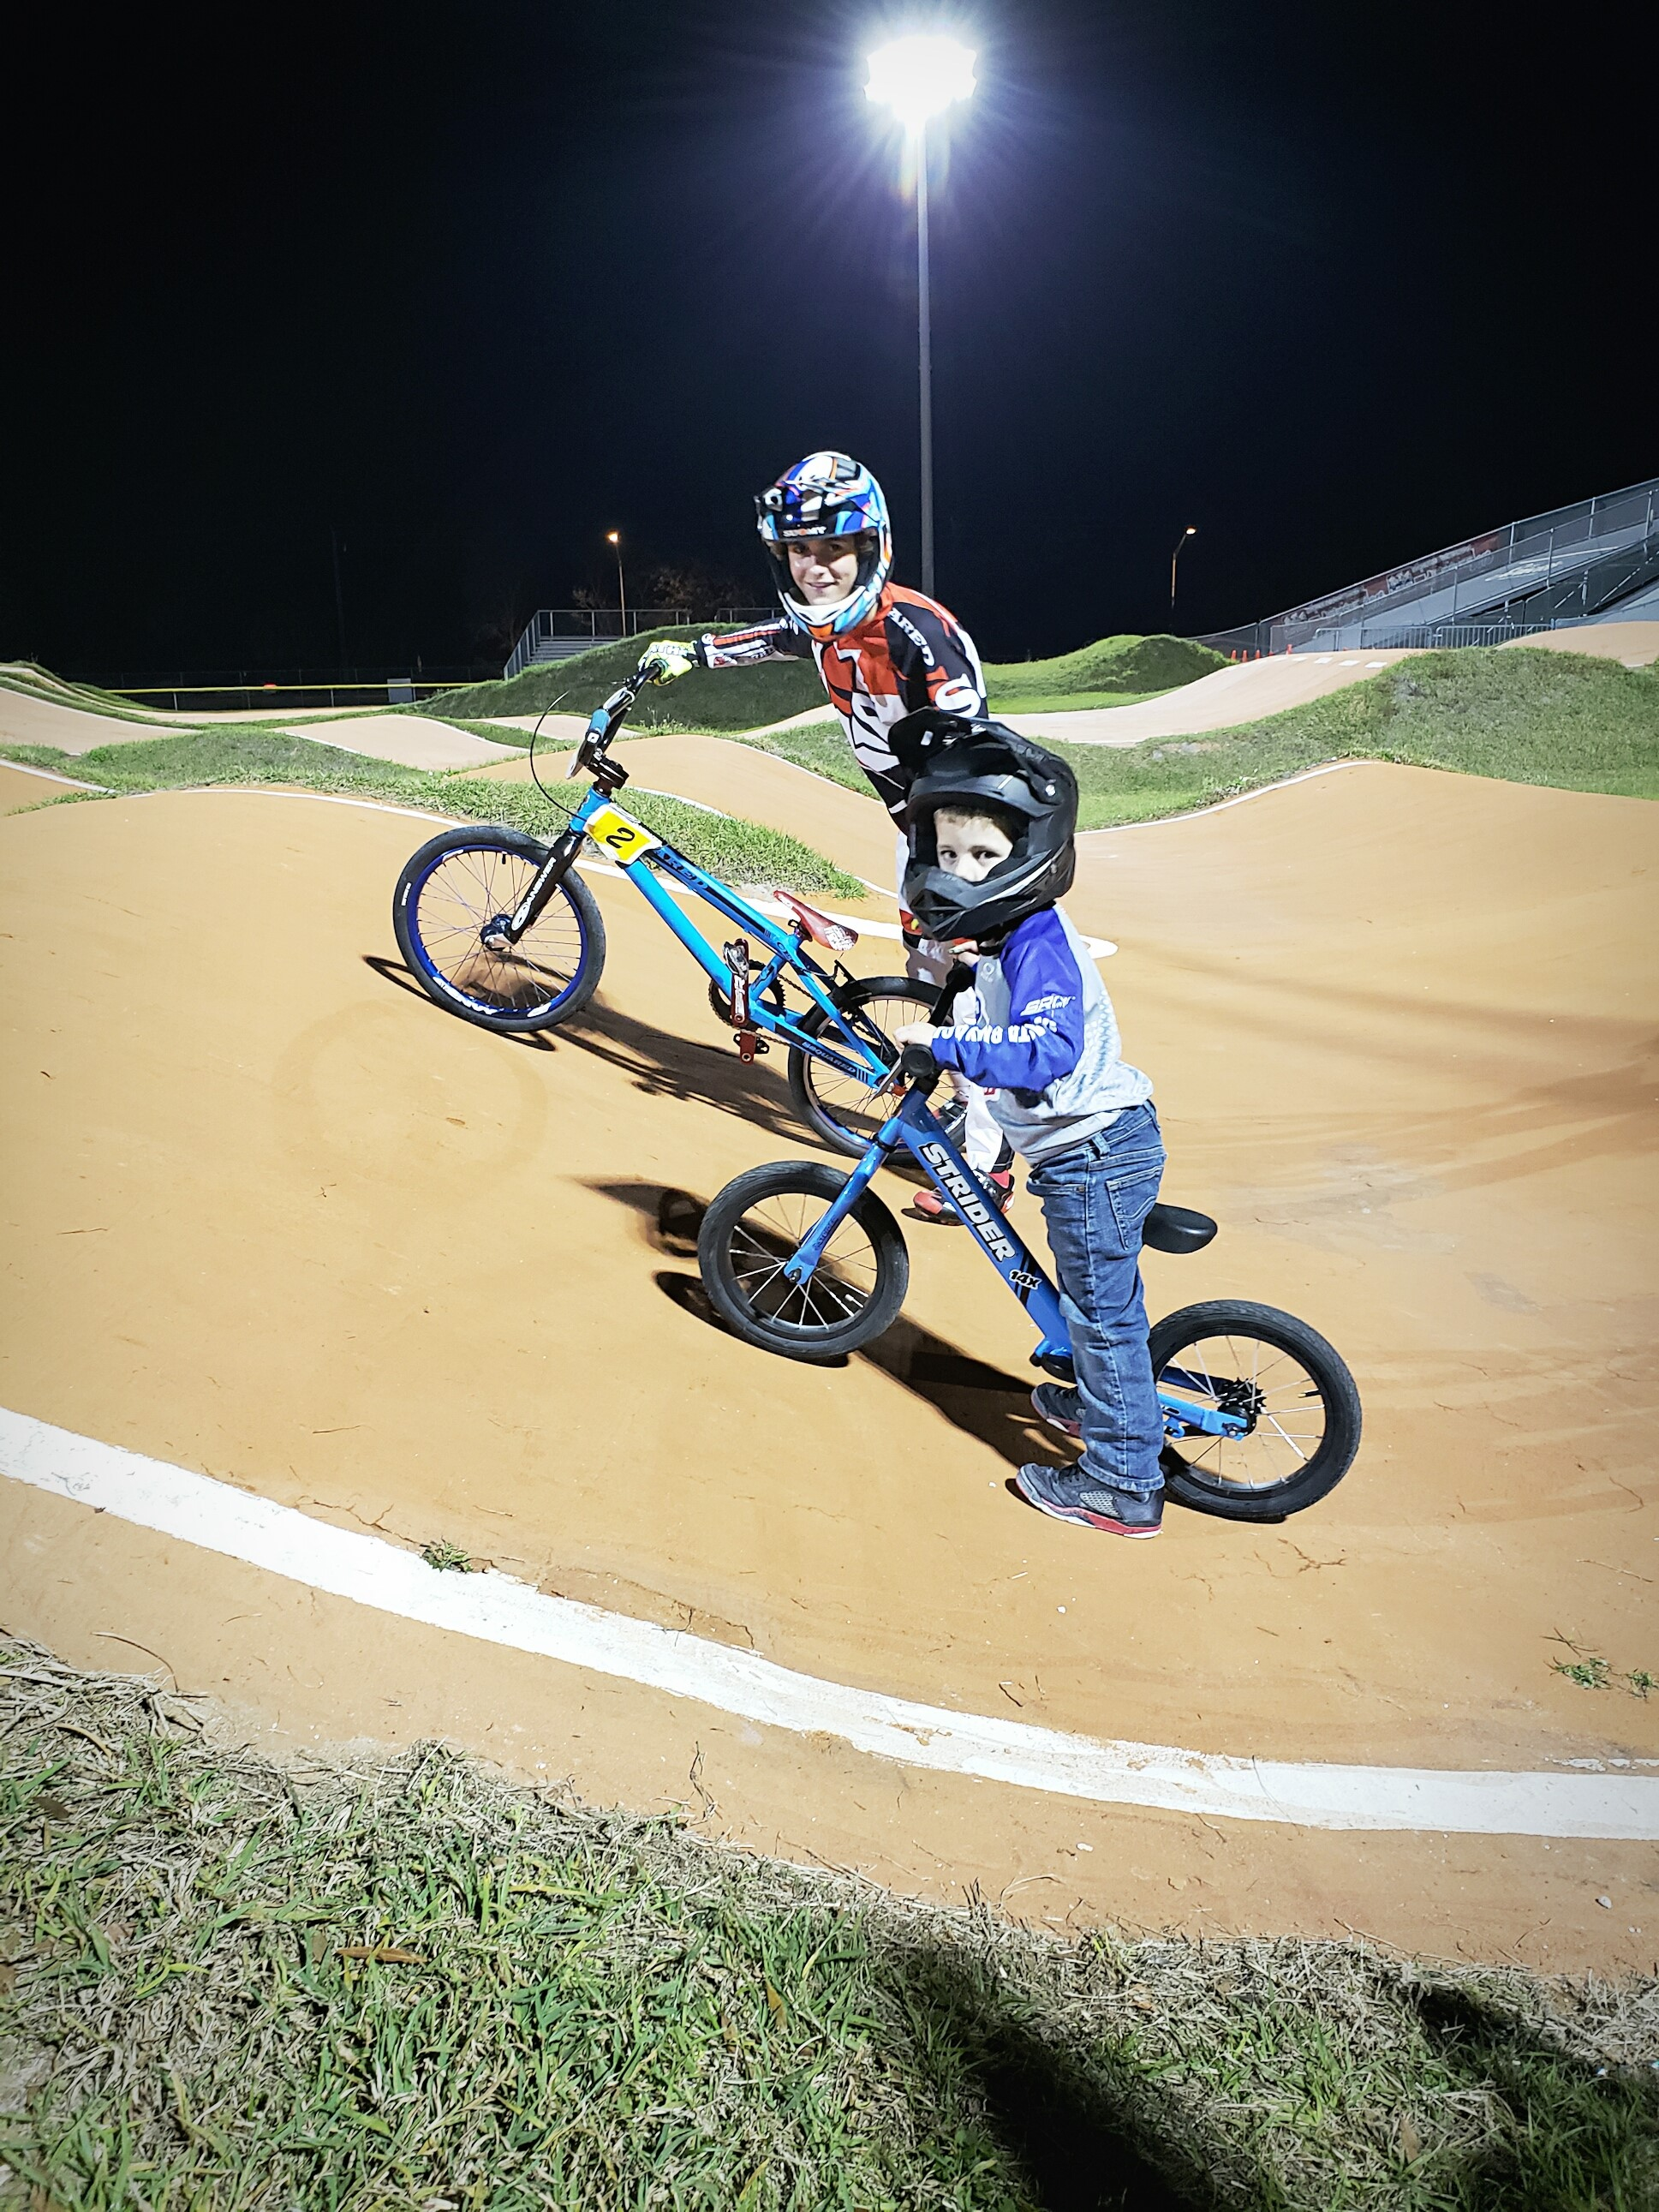 Ryan on his Strider at the Racetrack